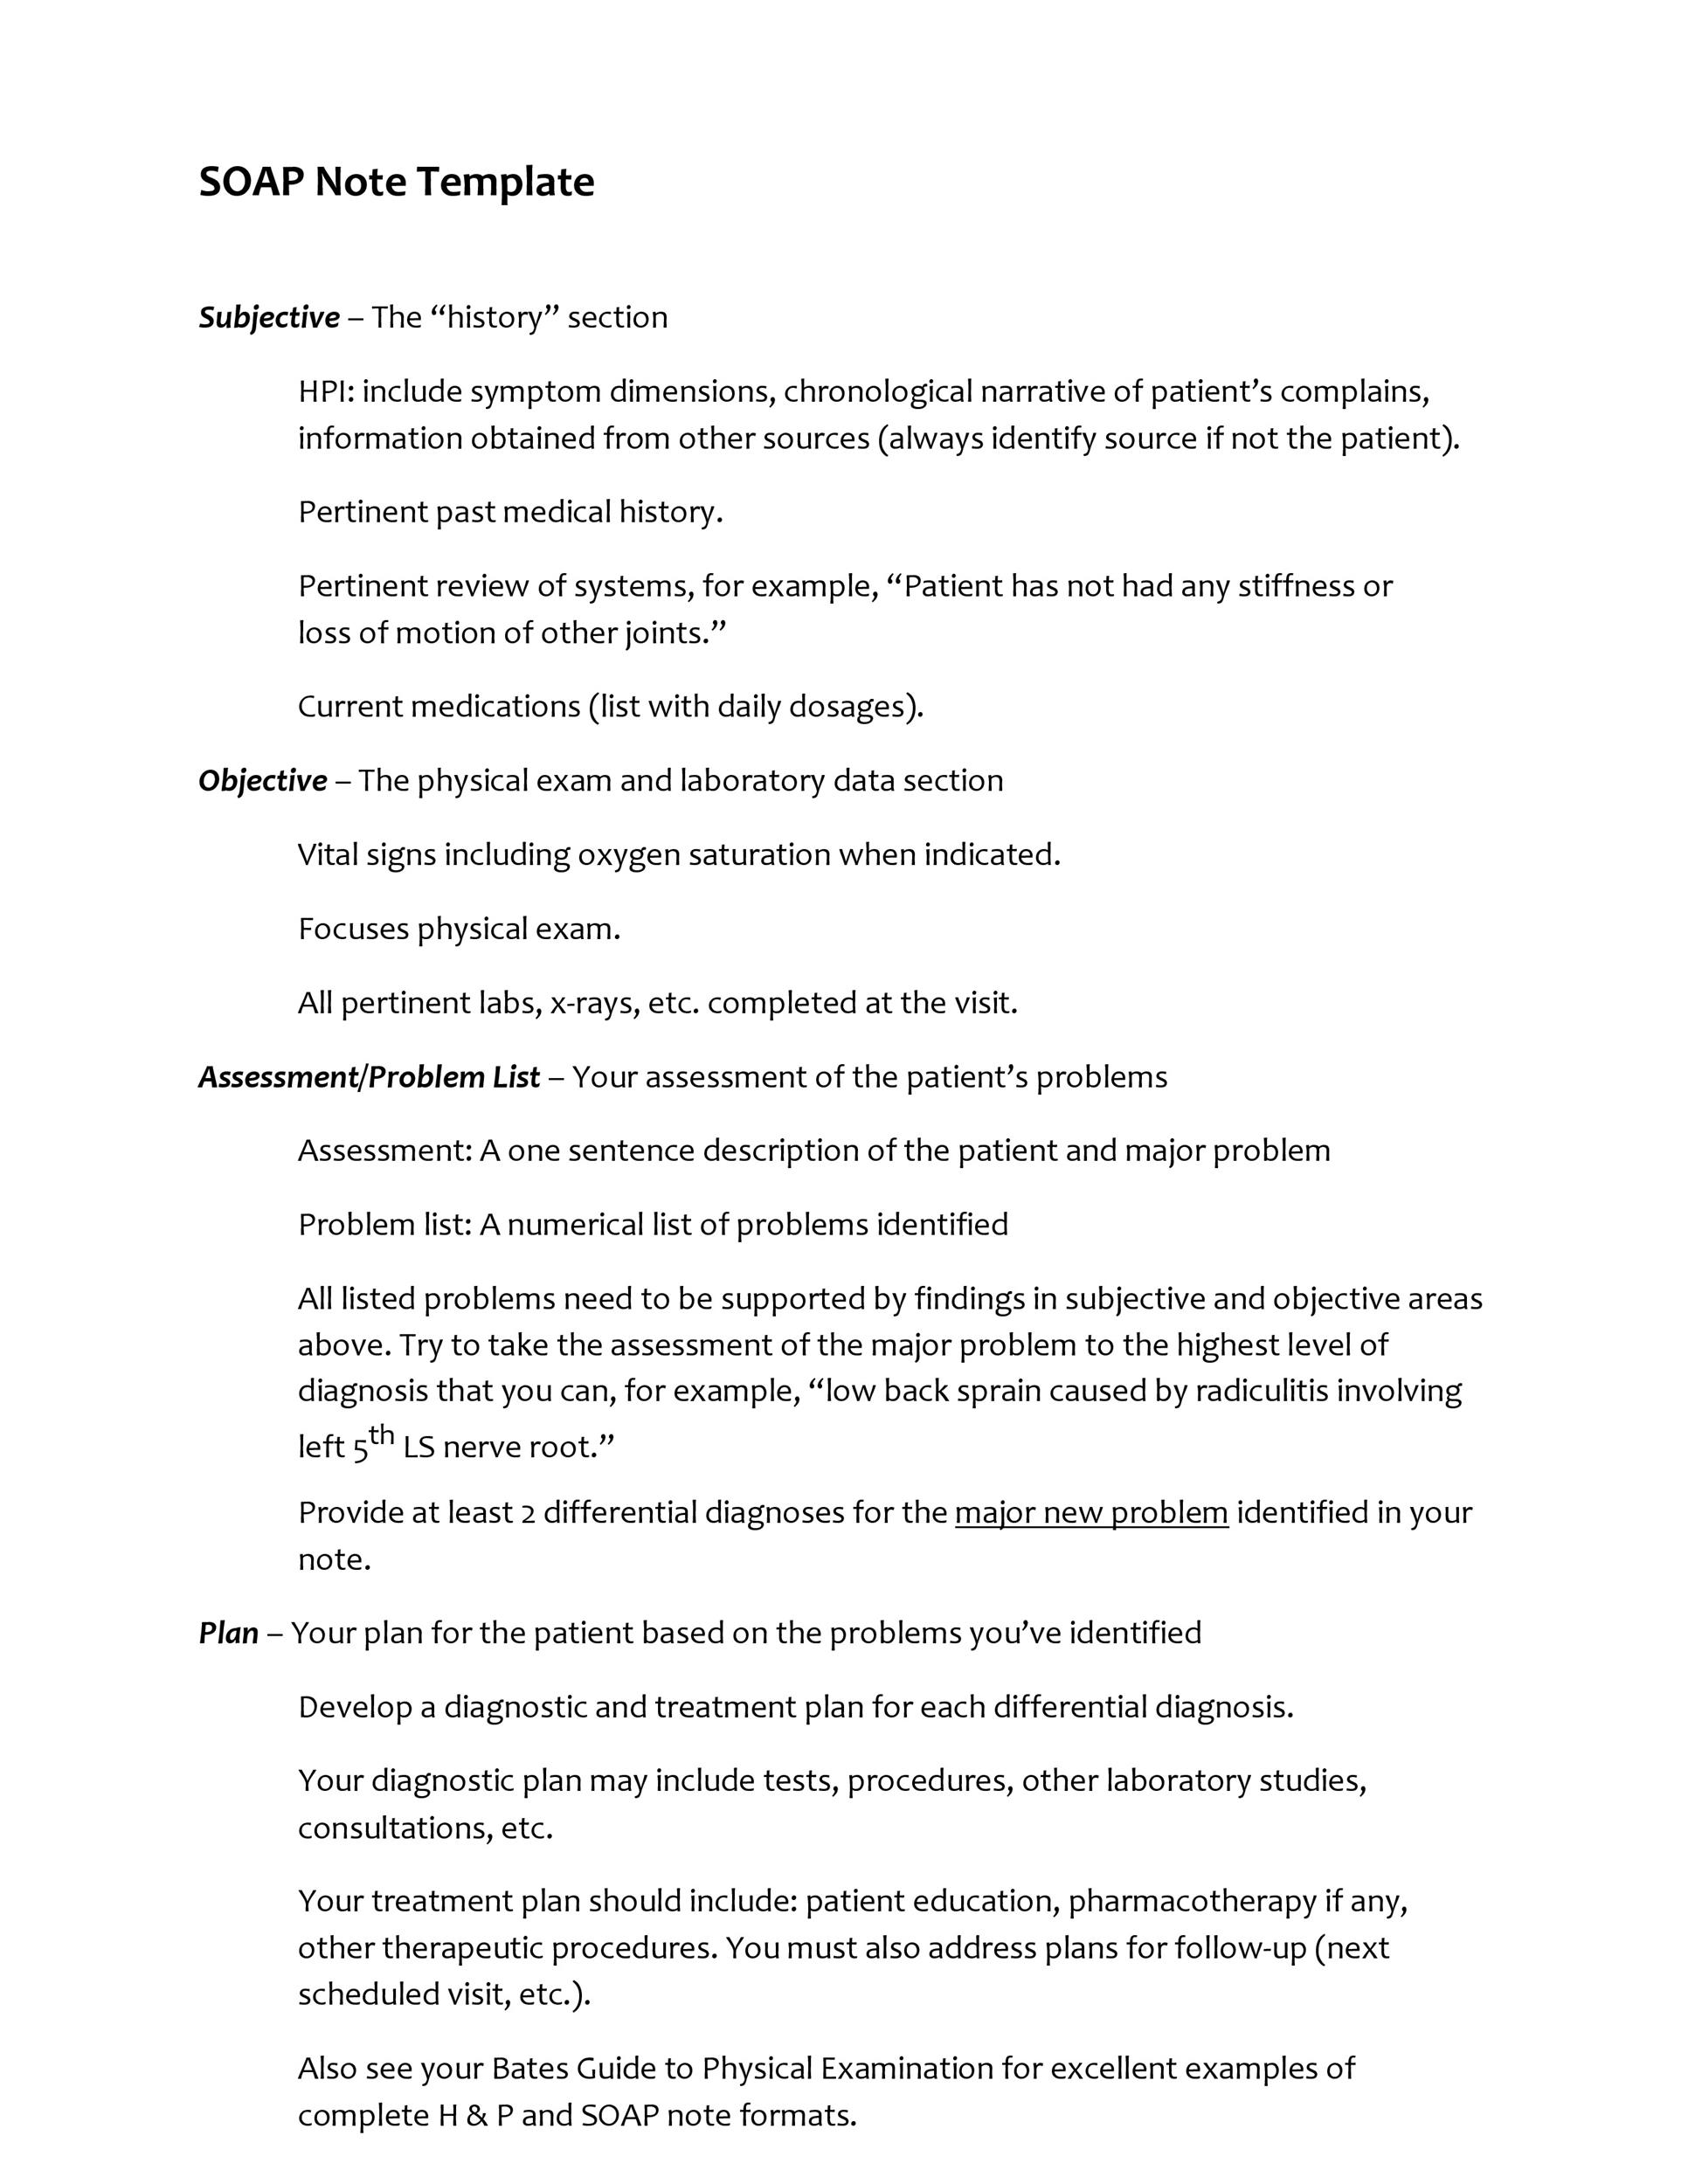 Free Soap Note Template 01